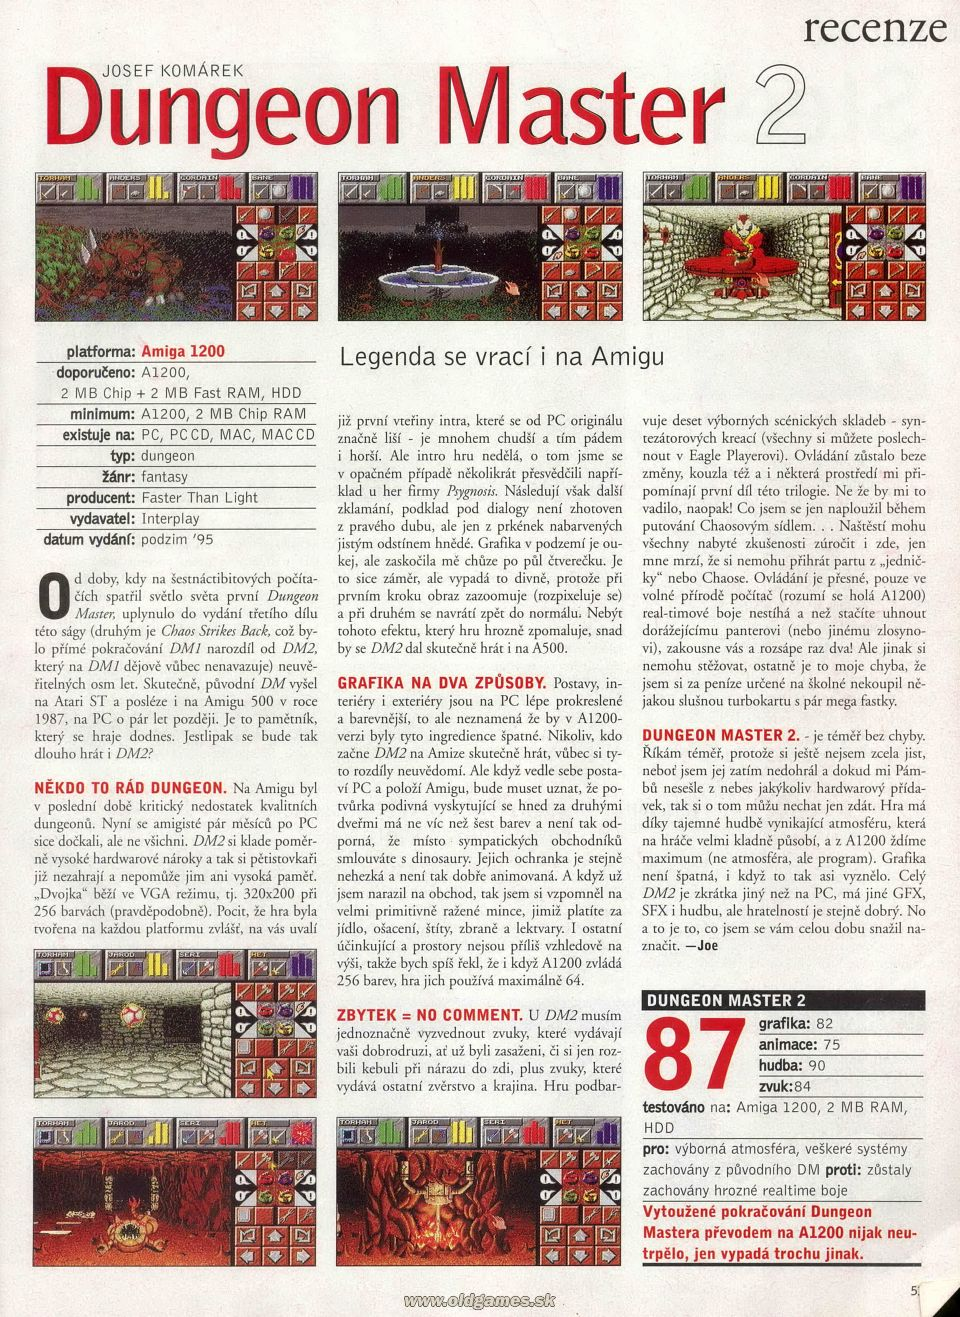 Dungeon Master II for Amiga Review published in Czech magazine 'Excalibur', Issue #52 February 1996, Page 53